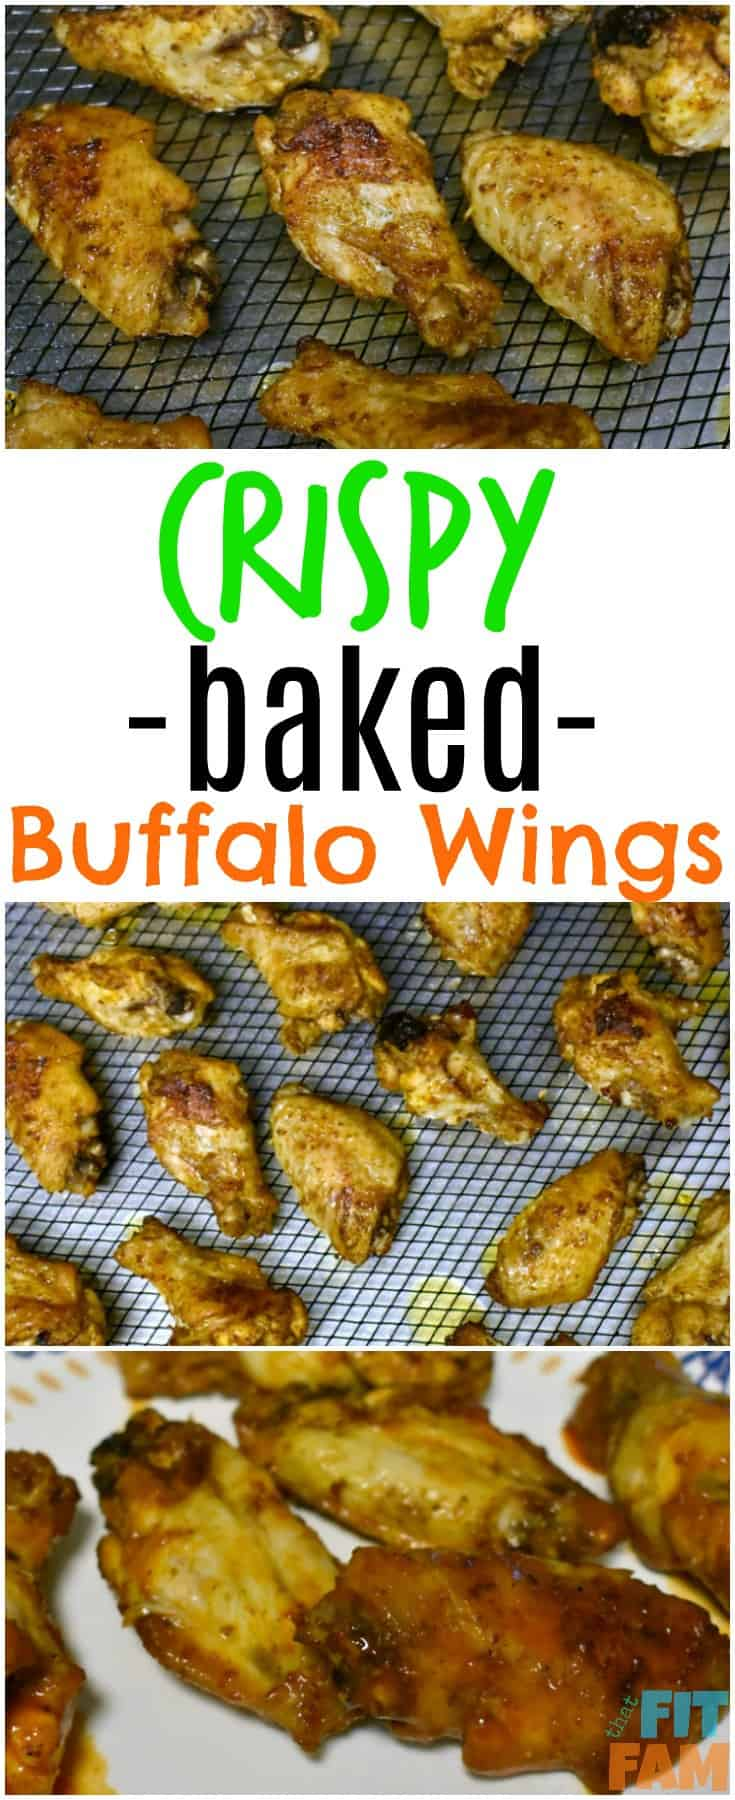 super easy crispy baked buffalo wings! Crispy and just as good as fried, but so much healthier! great game day/ party food!